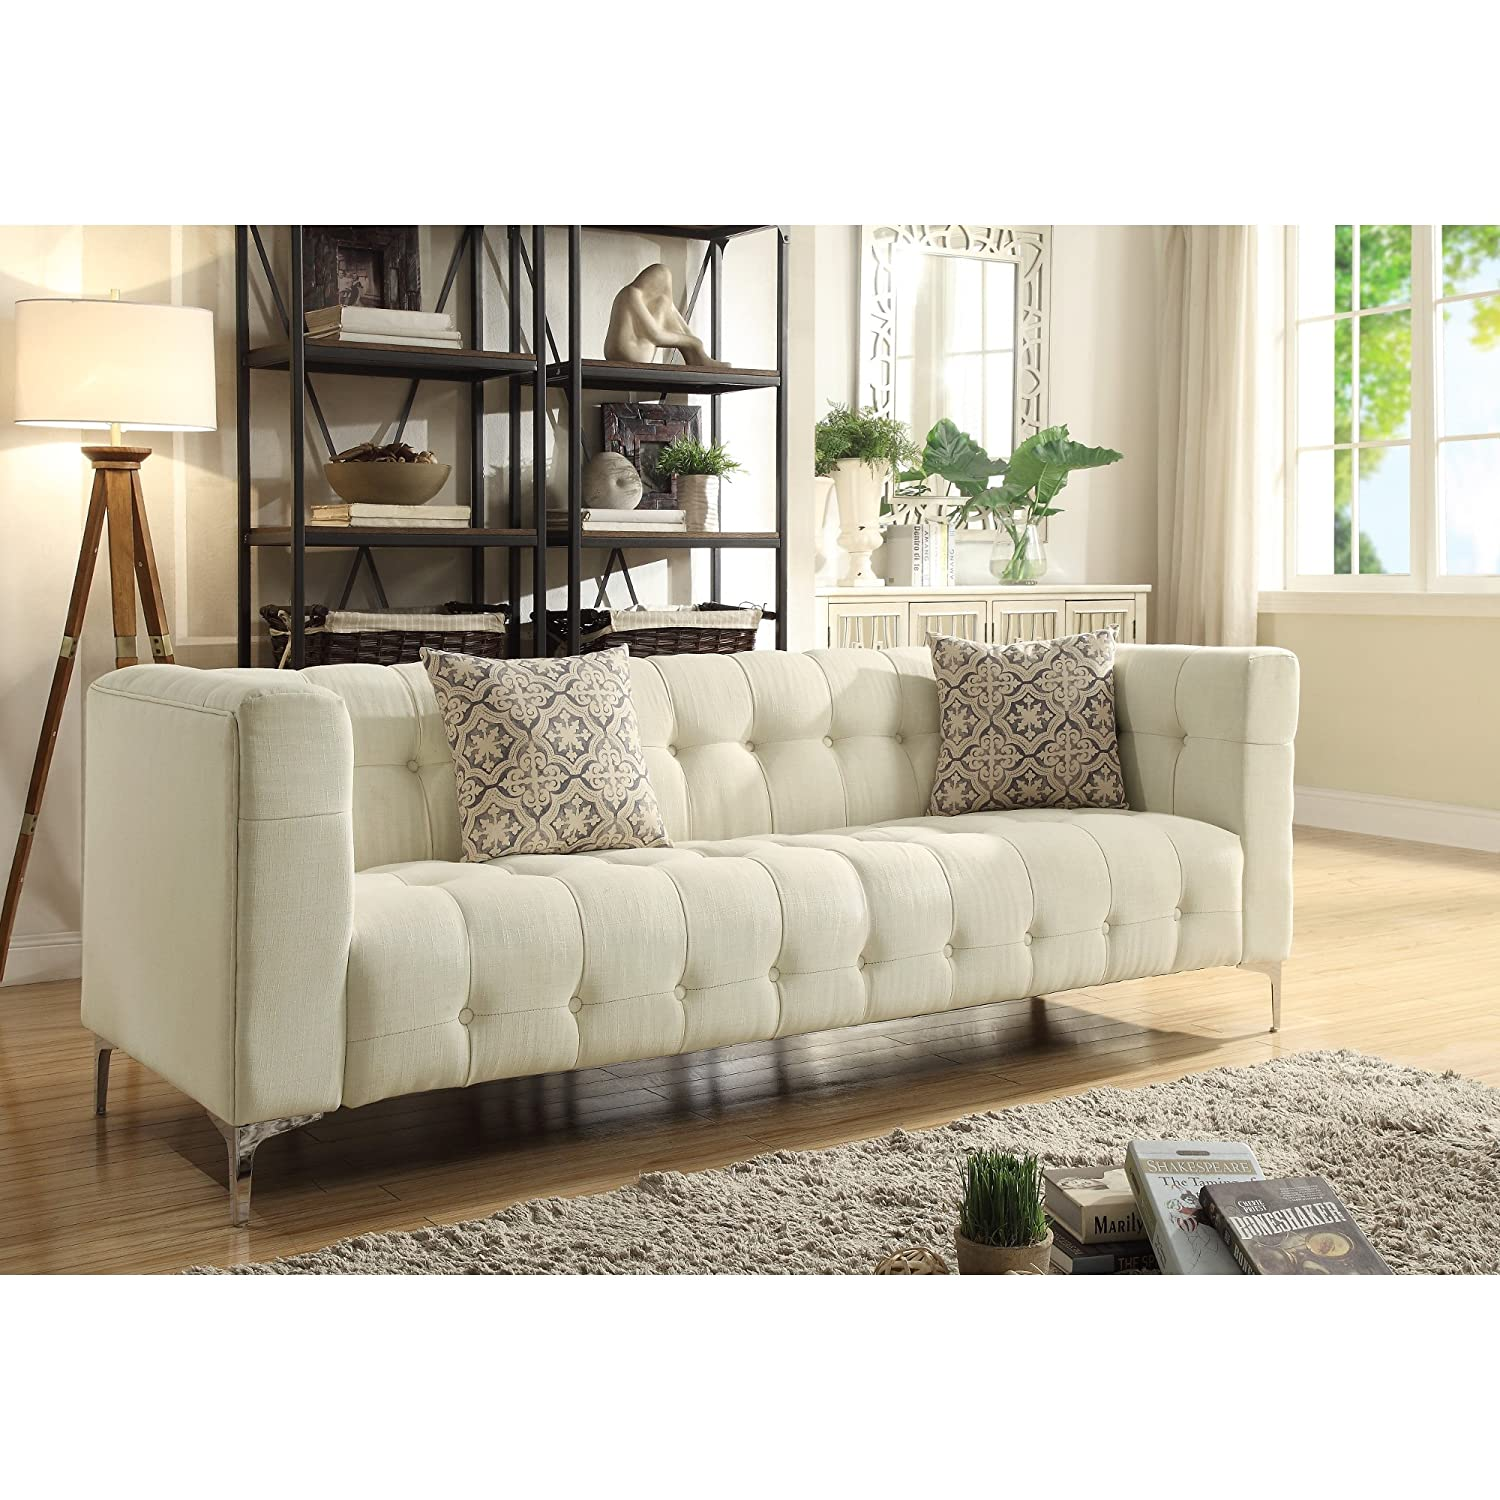 Amazon com inspired home vincent linen modern contemporary button tufted metal y leg sofa sand kitchen dining